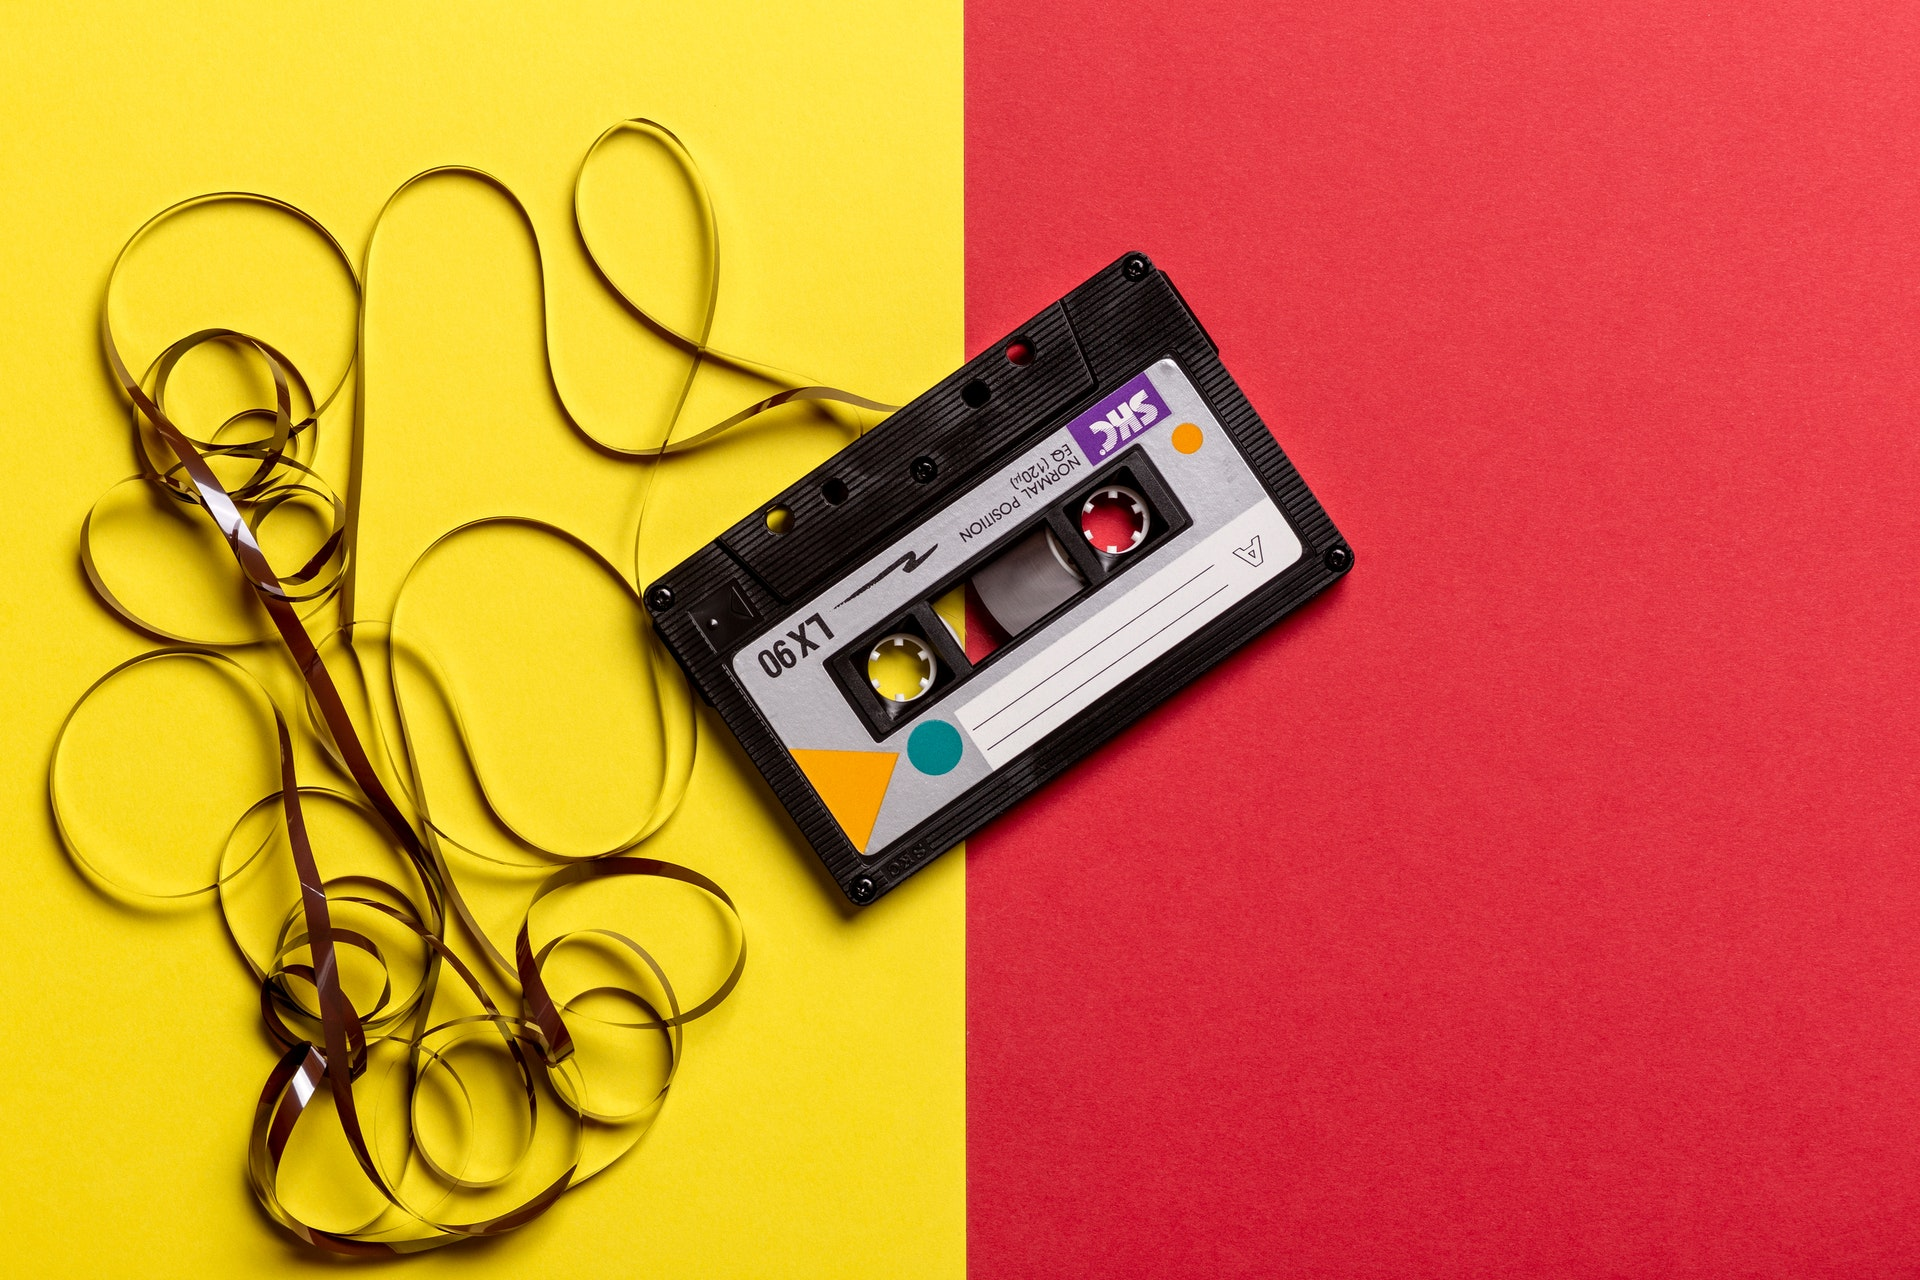 photo of a cassette tape on a colorful background